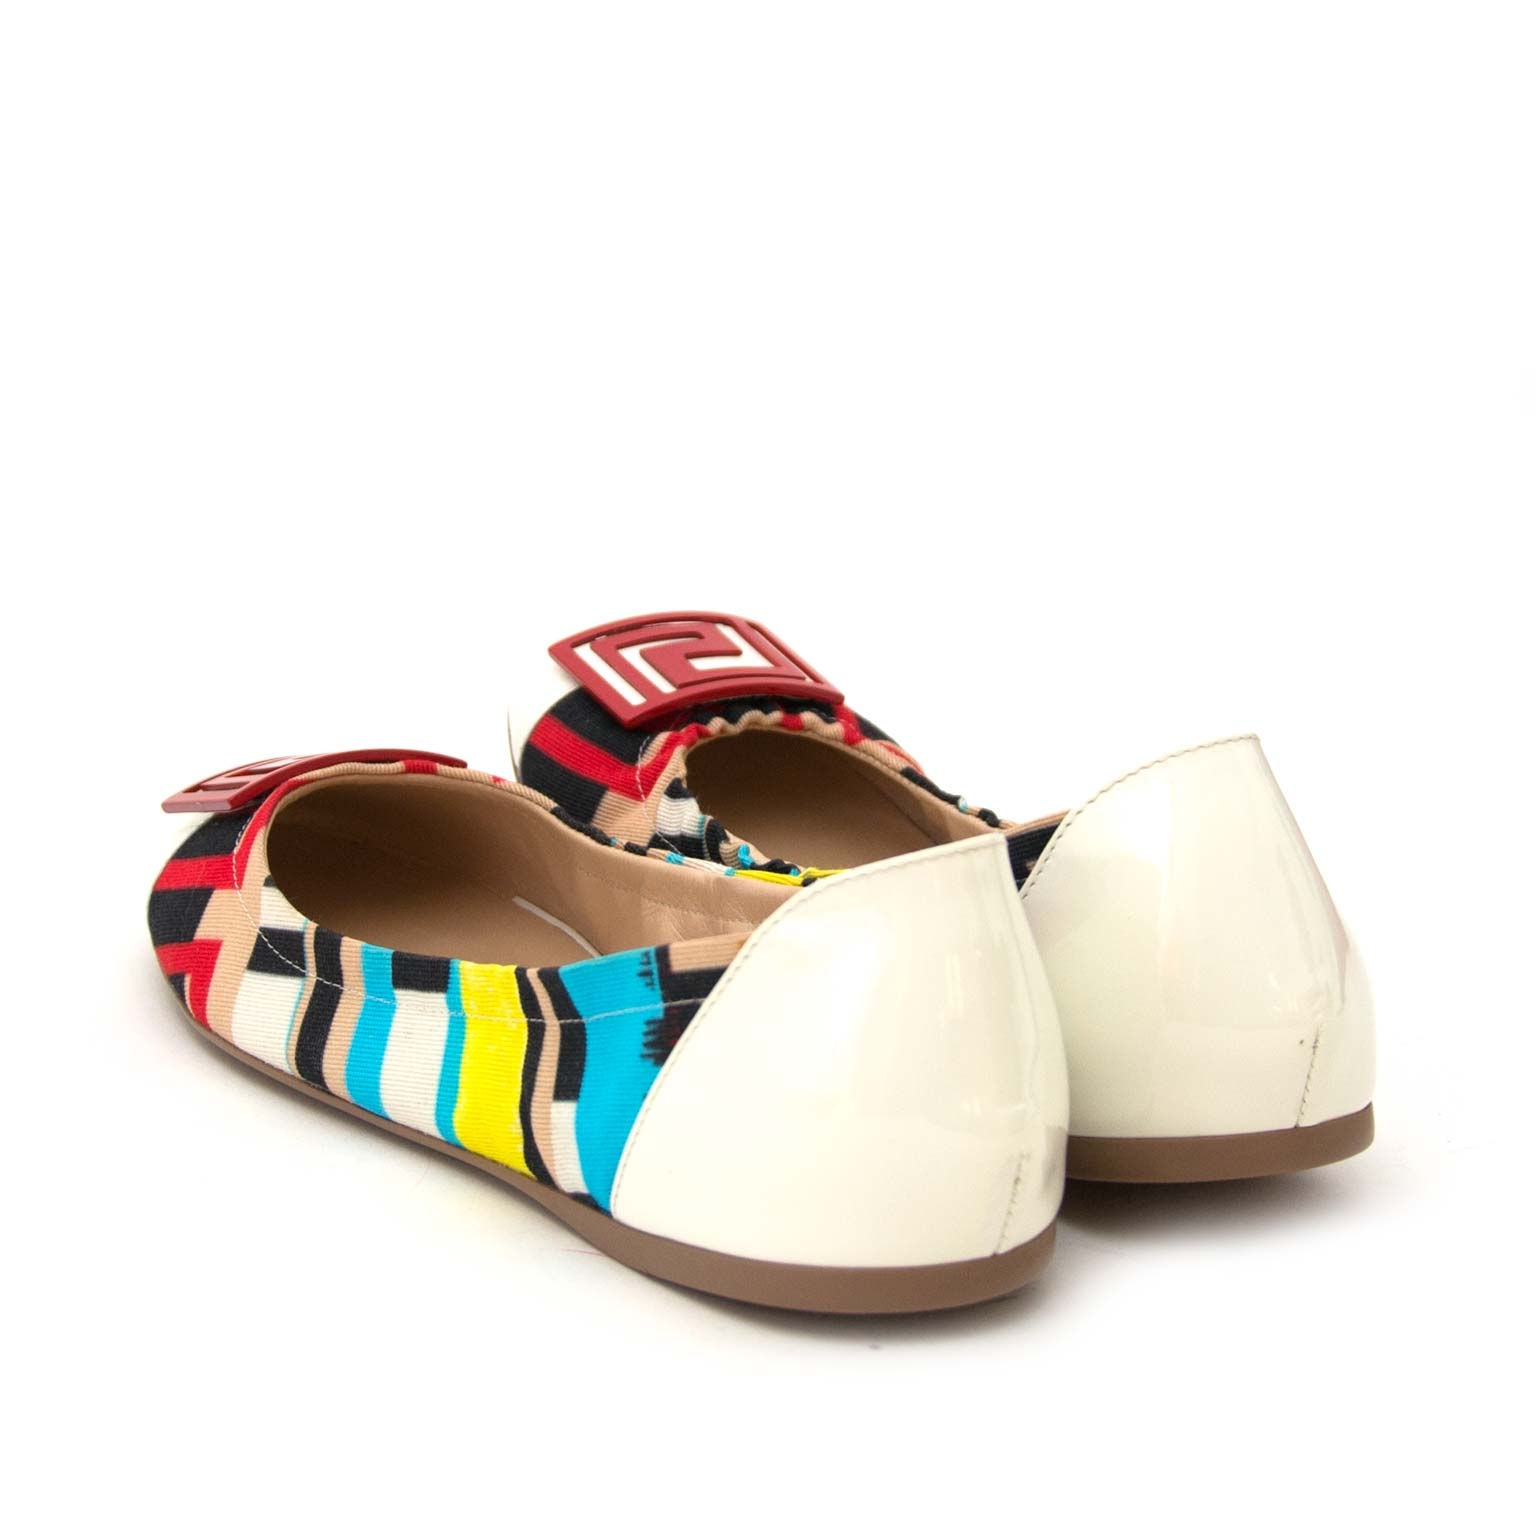 Buy Versace ballerinas online at labellov vintage fashion webshop